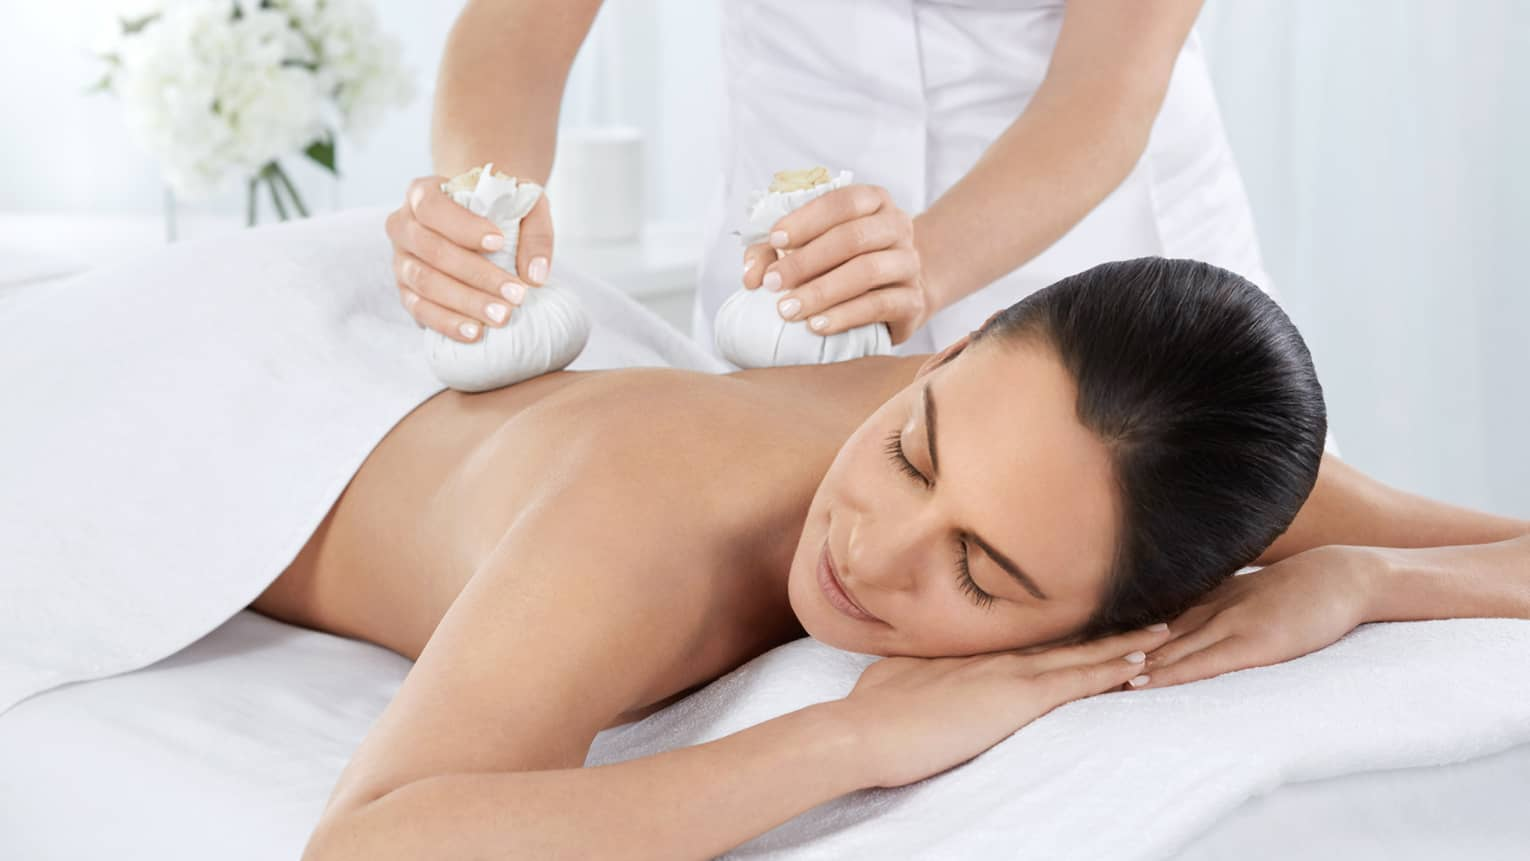 Woman with eyes closed lies under white sheet on massage table, staff presses herbs on shoulders